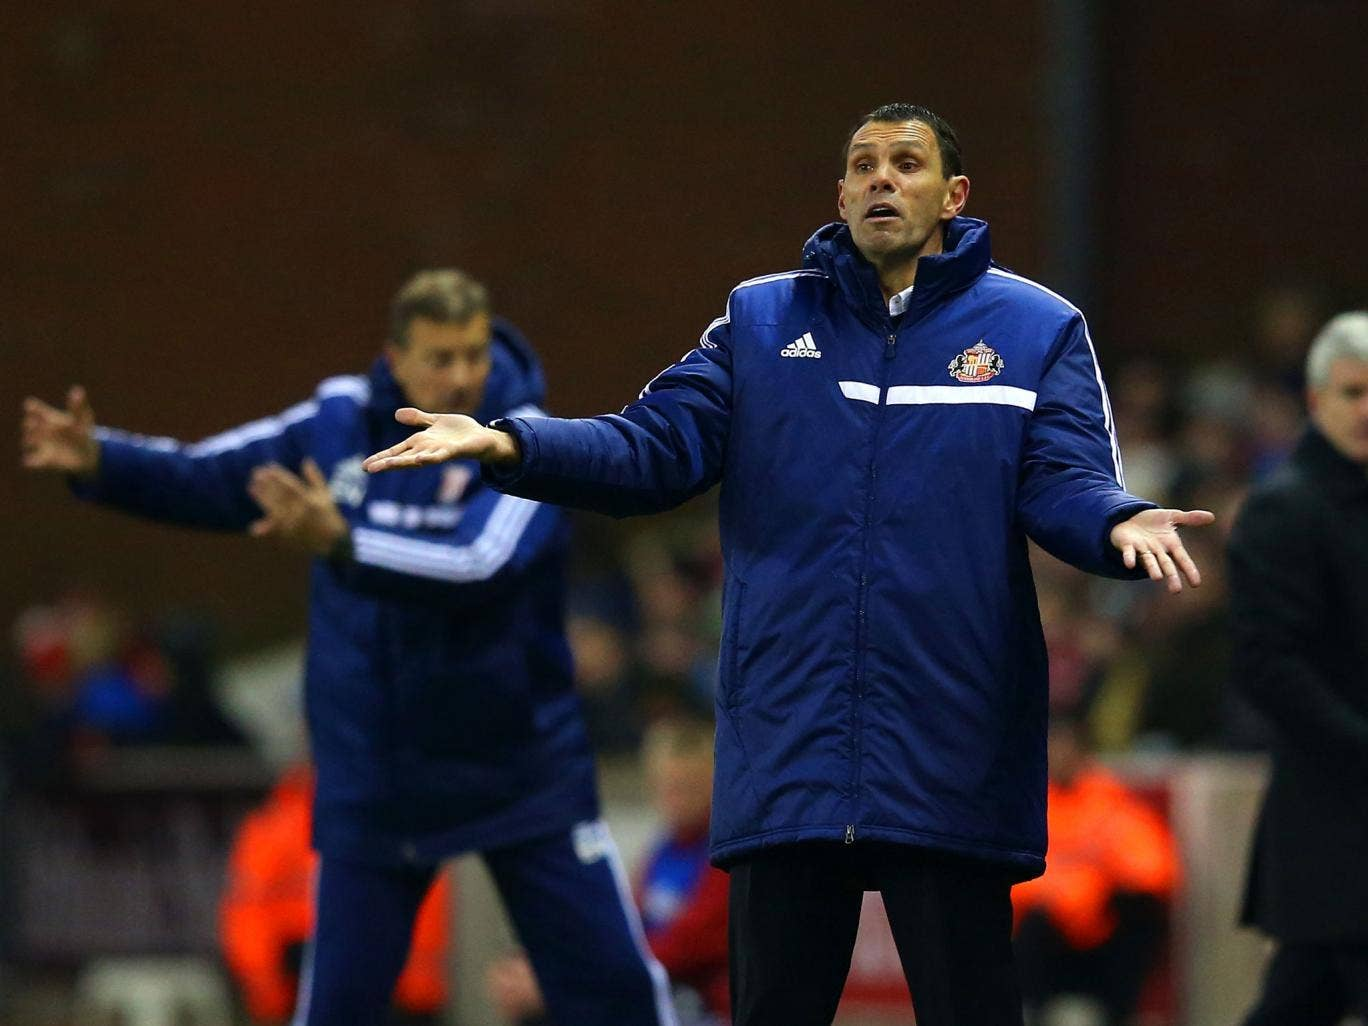 Gus Poyet has admitted his delight at the FA's decision to overturn the red card given to Sunderland defender Wes Brown